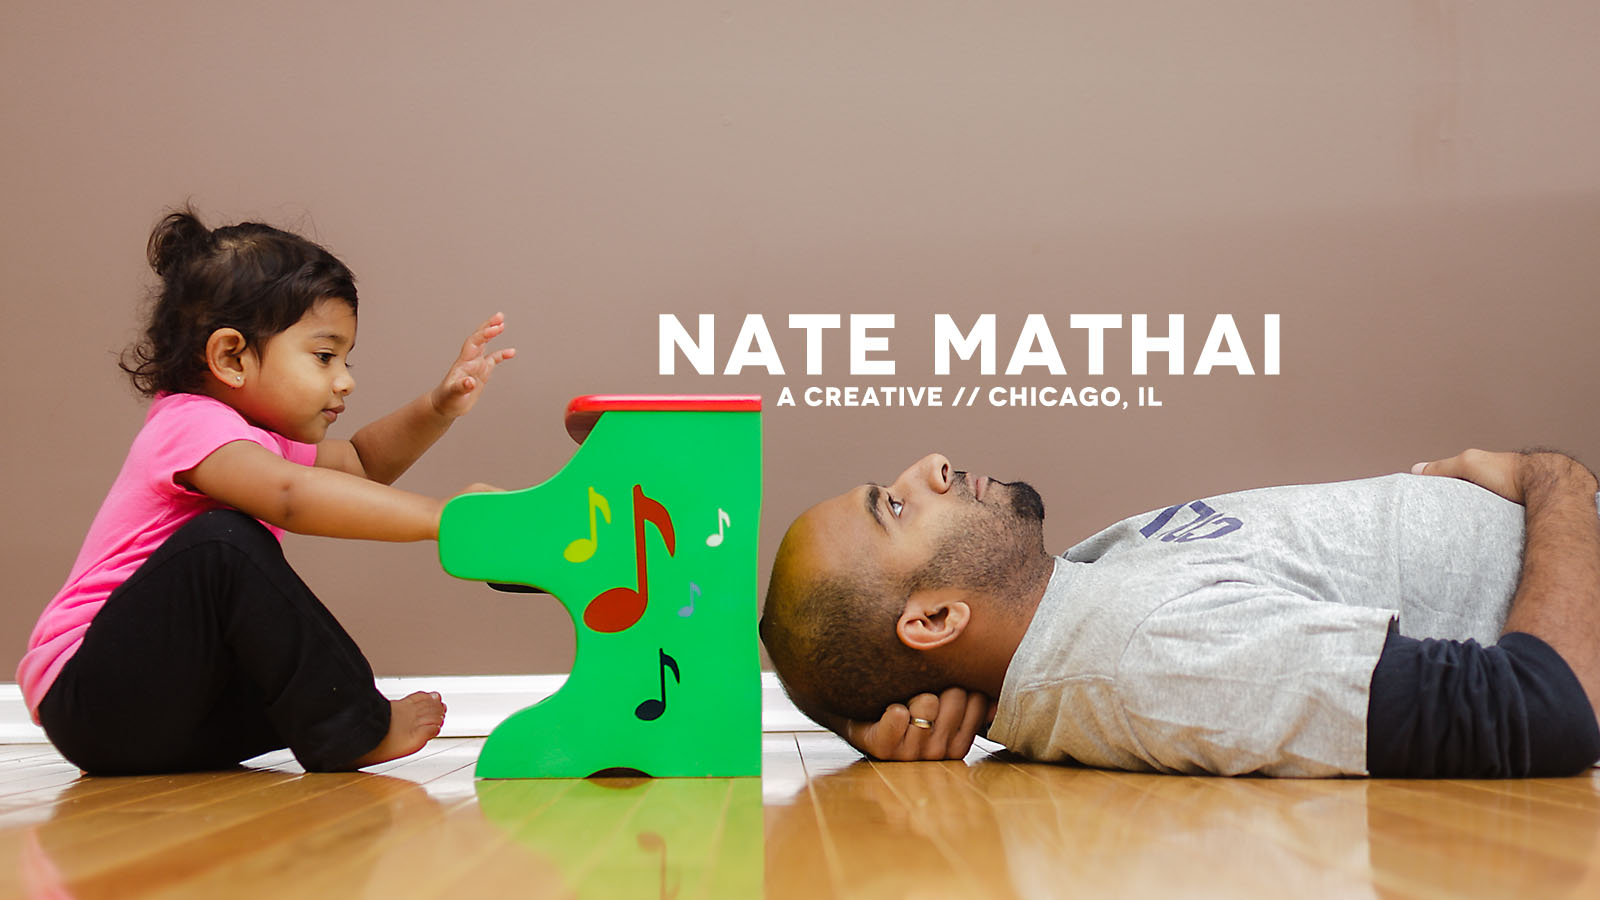 top image for CFC Mini Olympics by chicago wedding photographer nate mathai